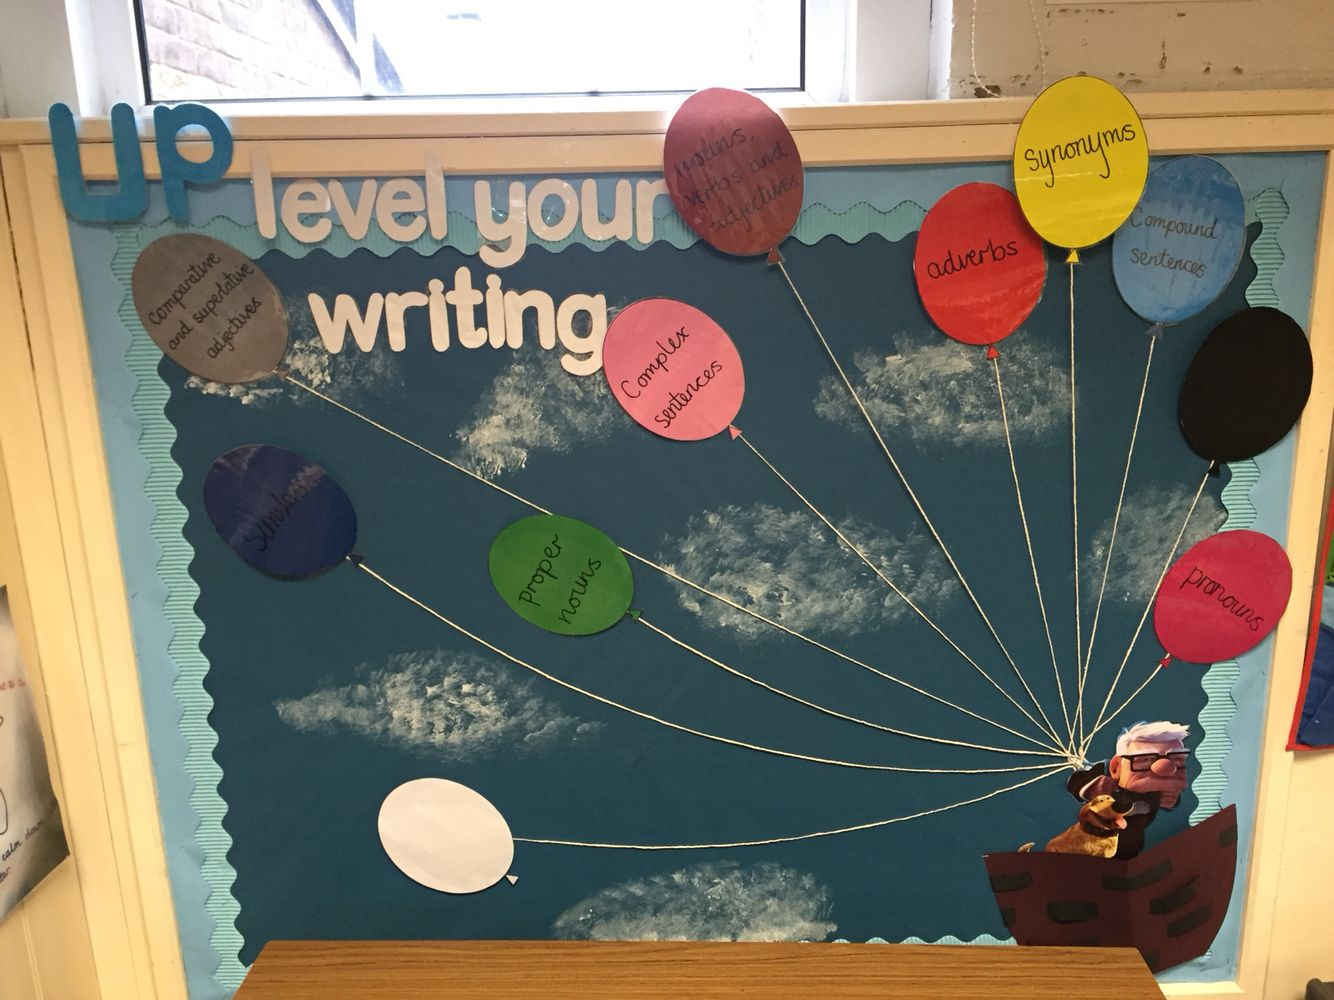 Uplevel Your Writing Spag Display Board With Images